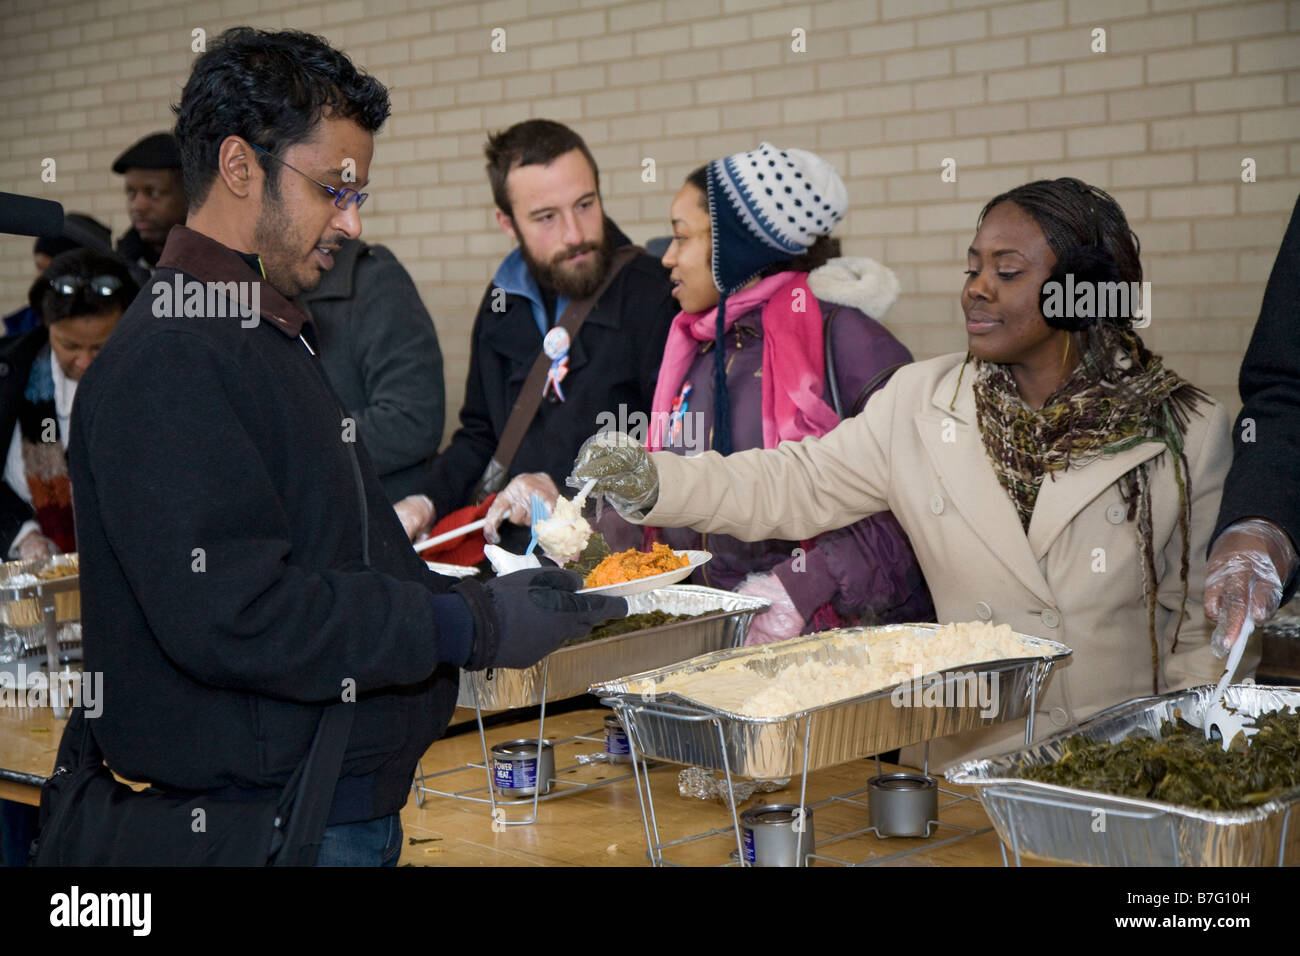 Volunteers Serve Meal To The Homeless At Outdoor Soup Kitchen   Stock Image